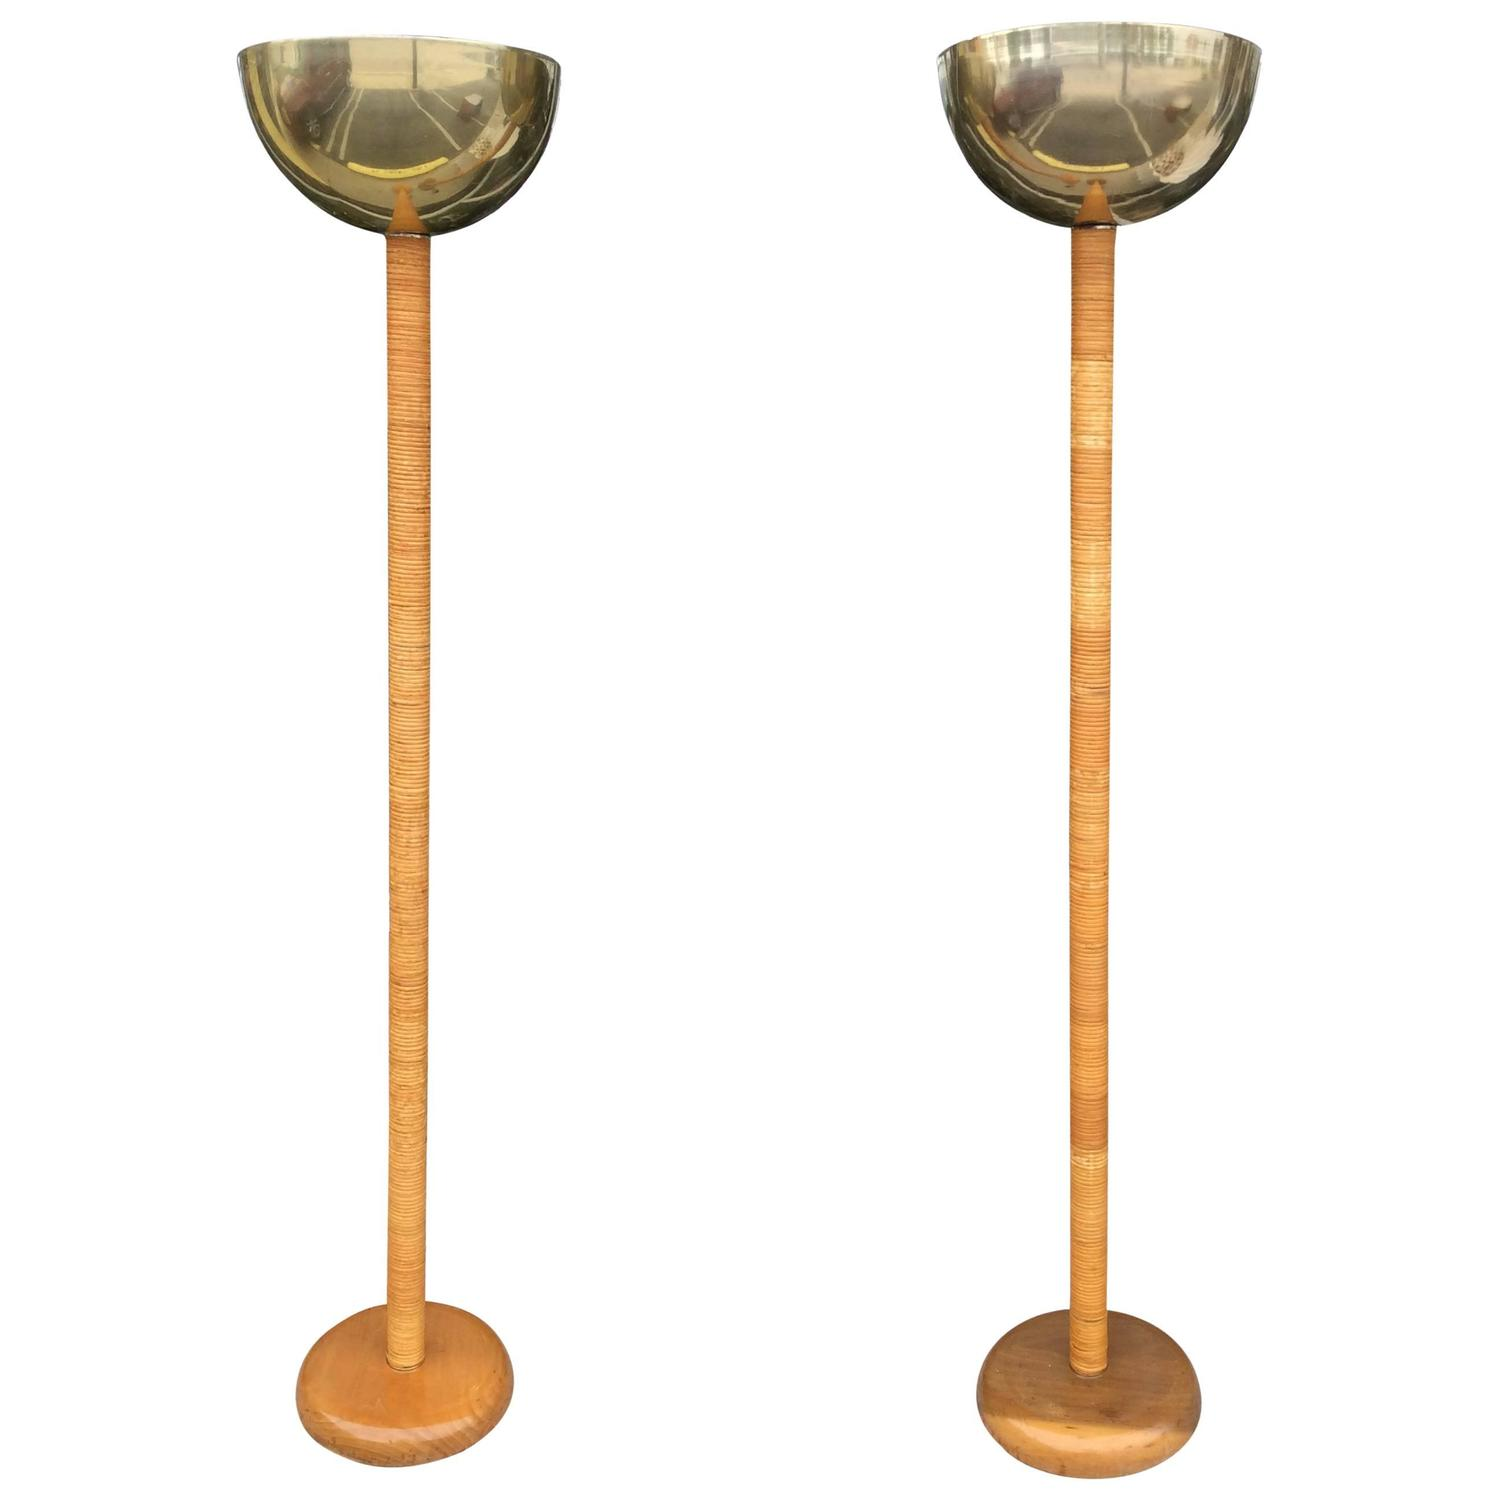 Pair of Vintage Bamboo Rattan and Brass Table Floor Lamps For Sale